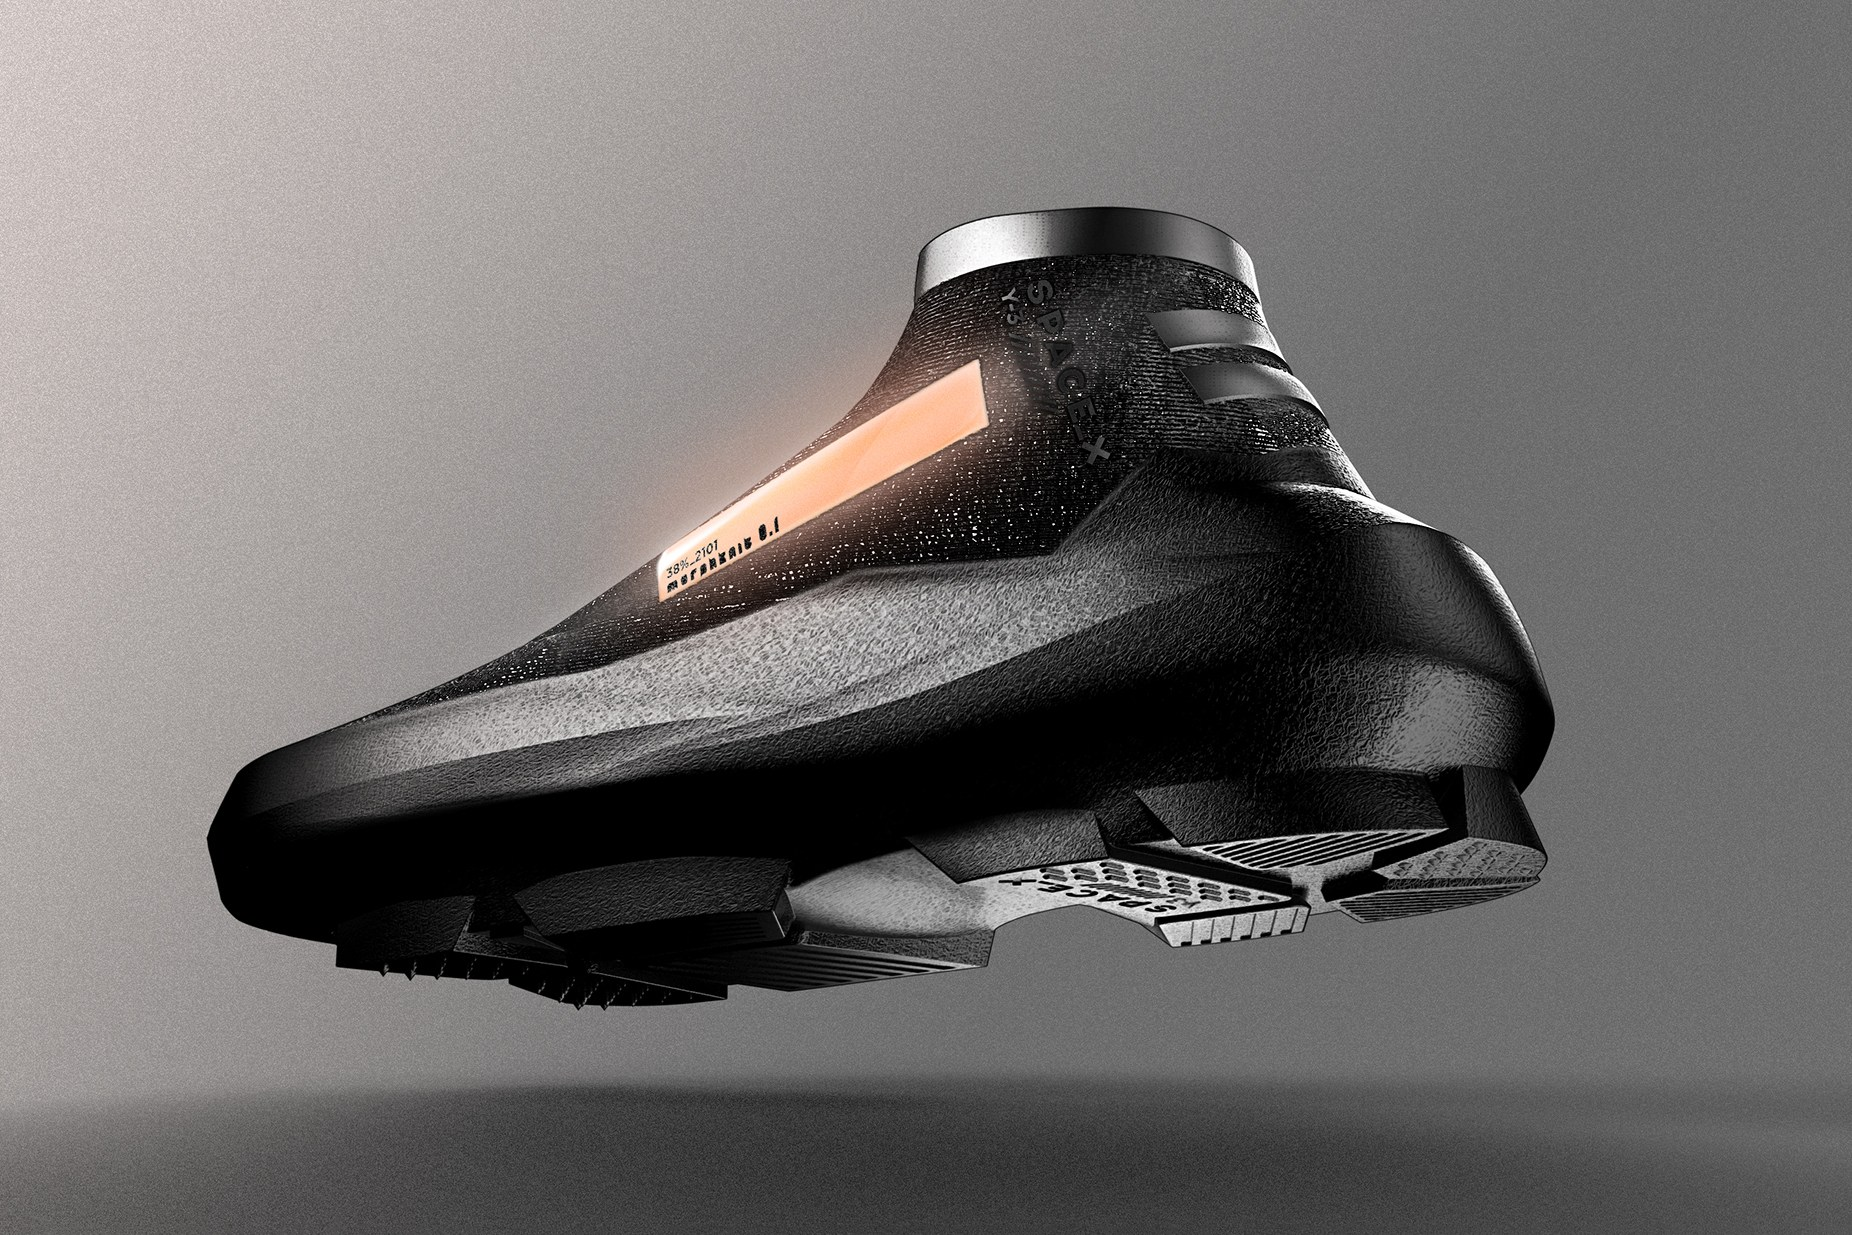 y-3-spacex-concept-sneaker-7